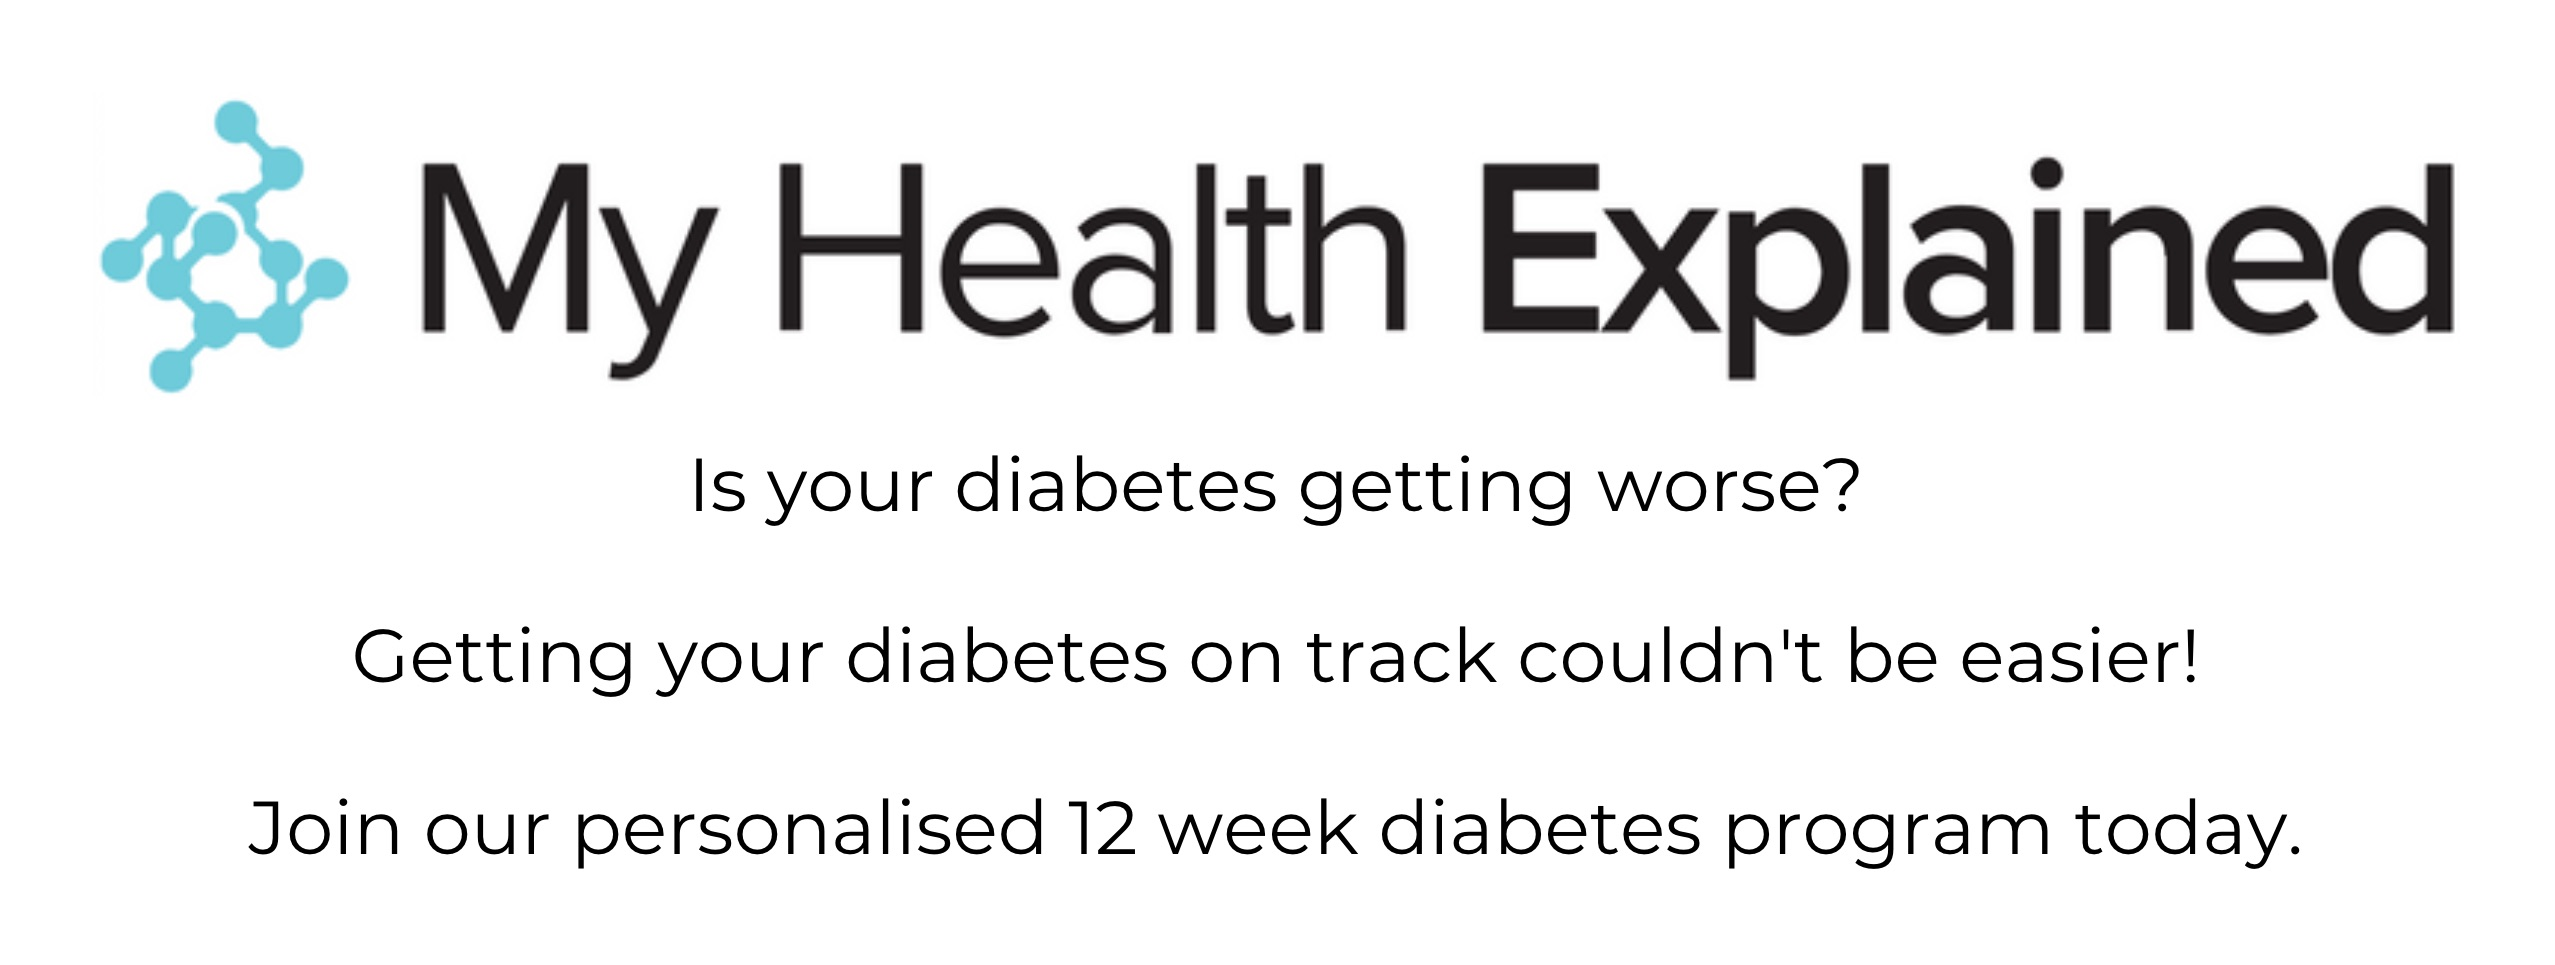 Is your diabetes getting worse